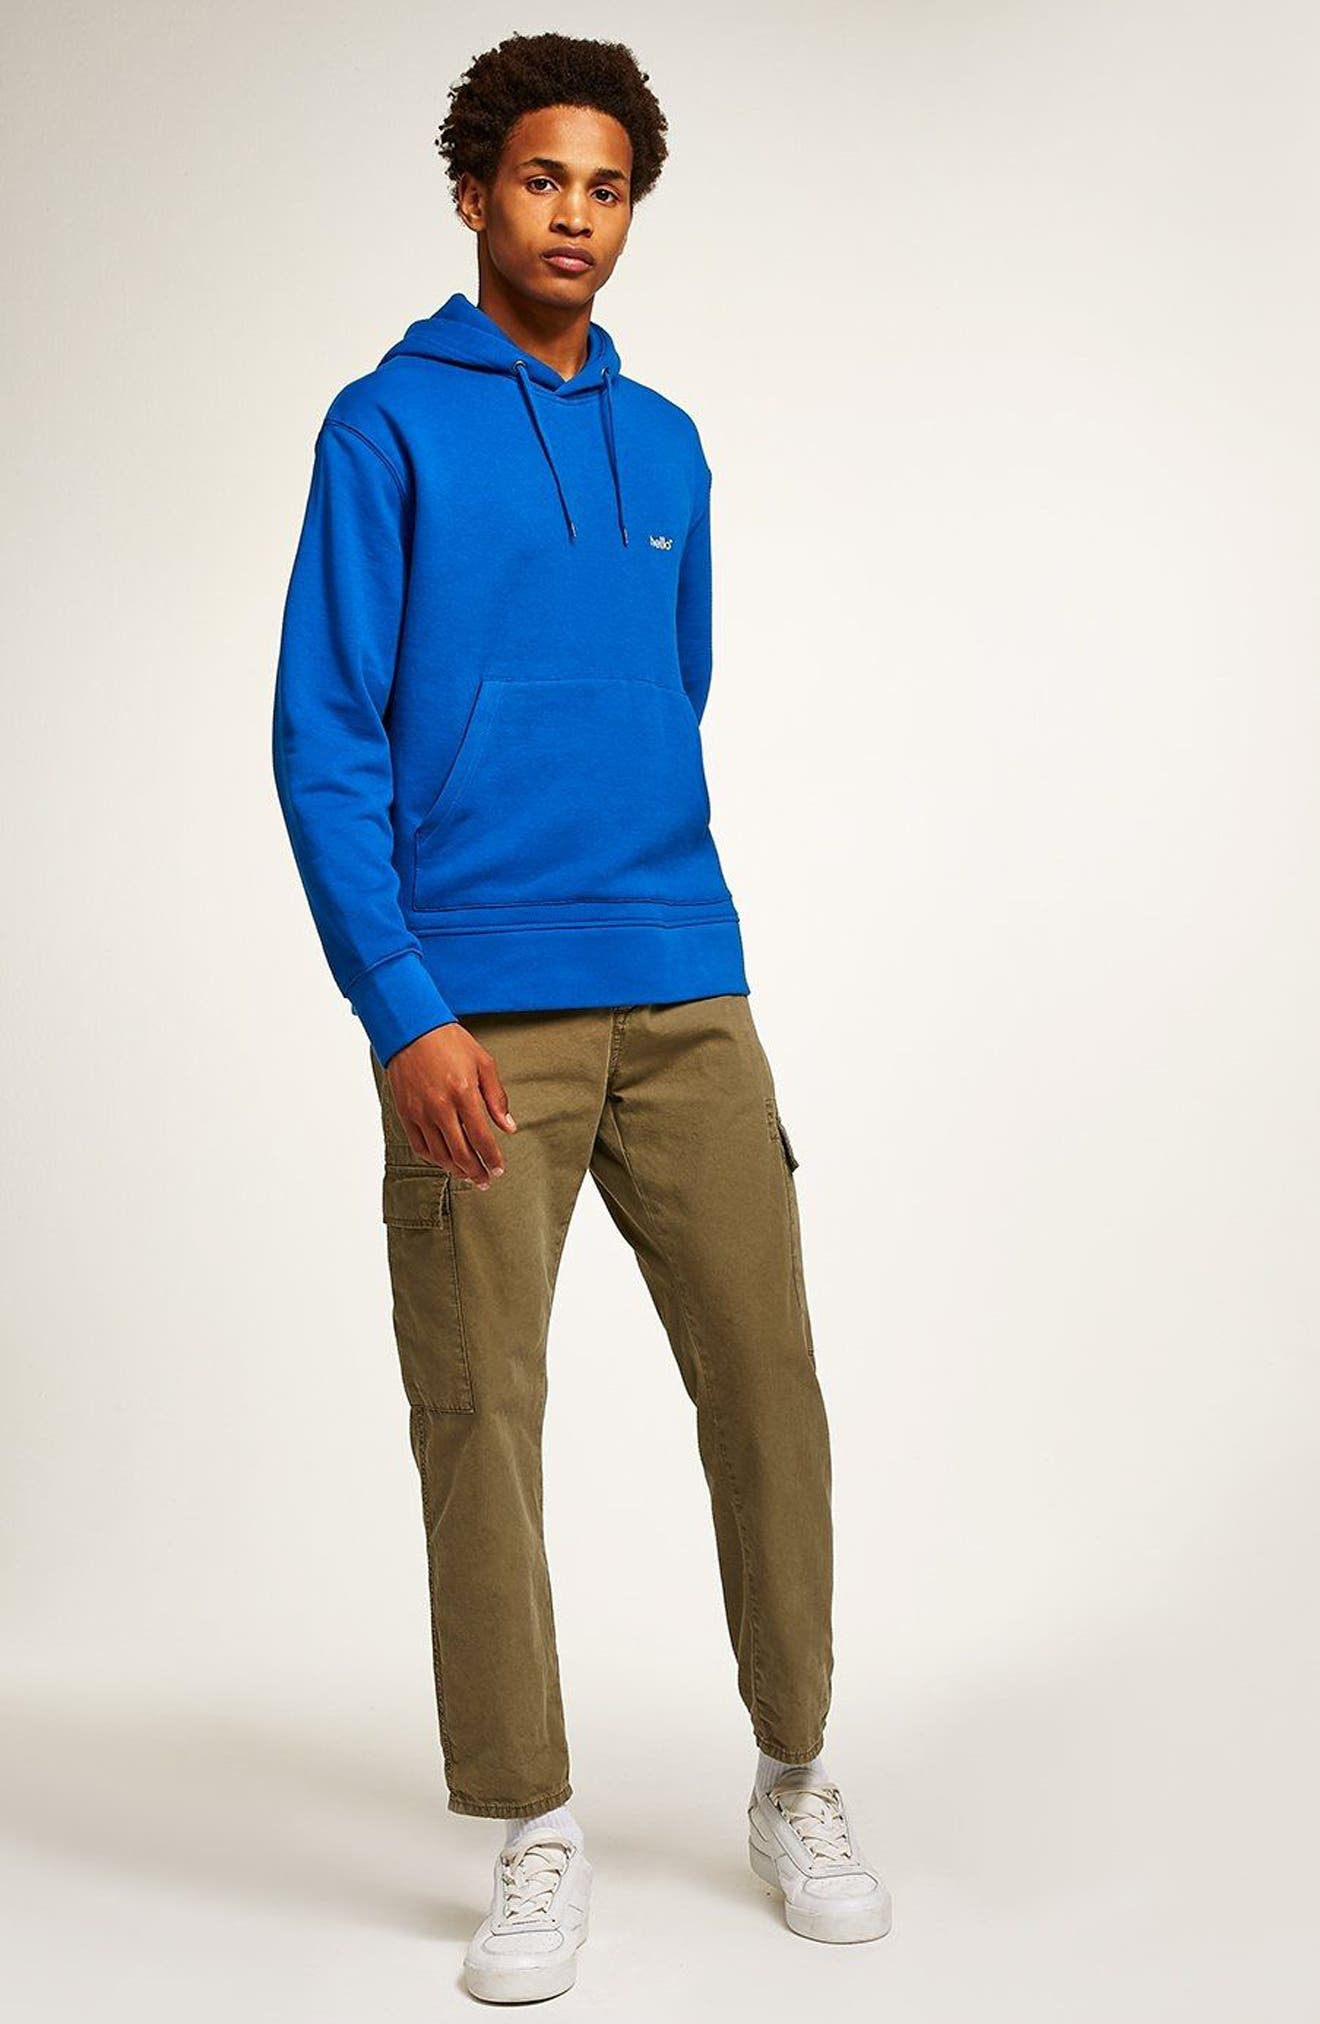 Classic Fit Tristan Hello Embroidered Hoodie,                             Alternate thumbnail 5, color,                             Blue Multi